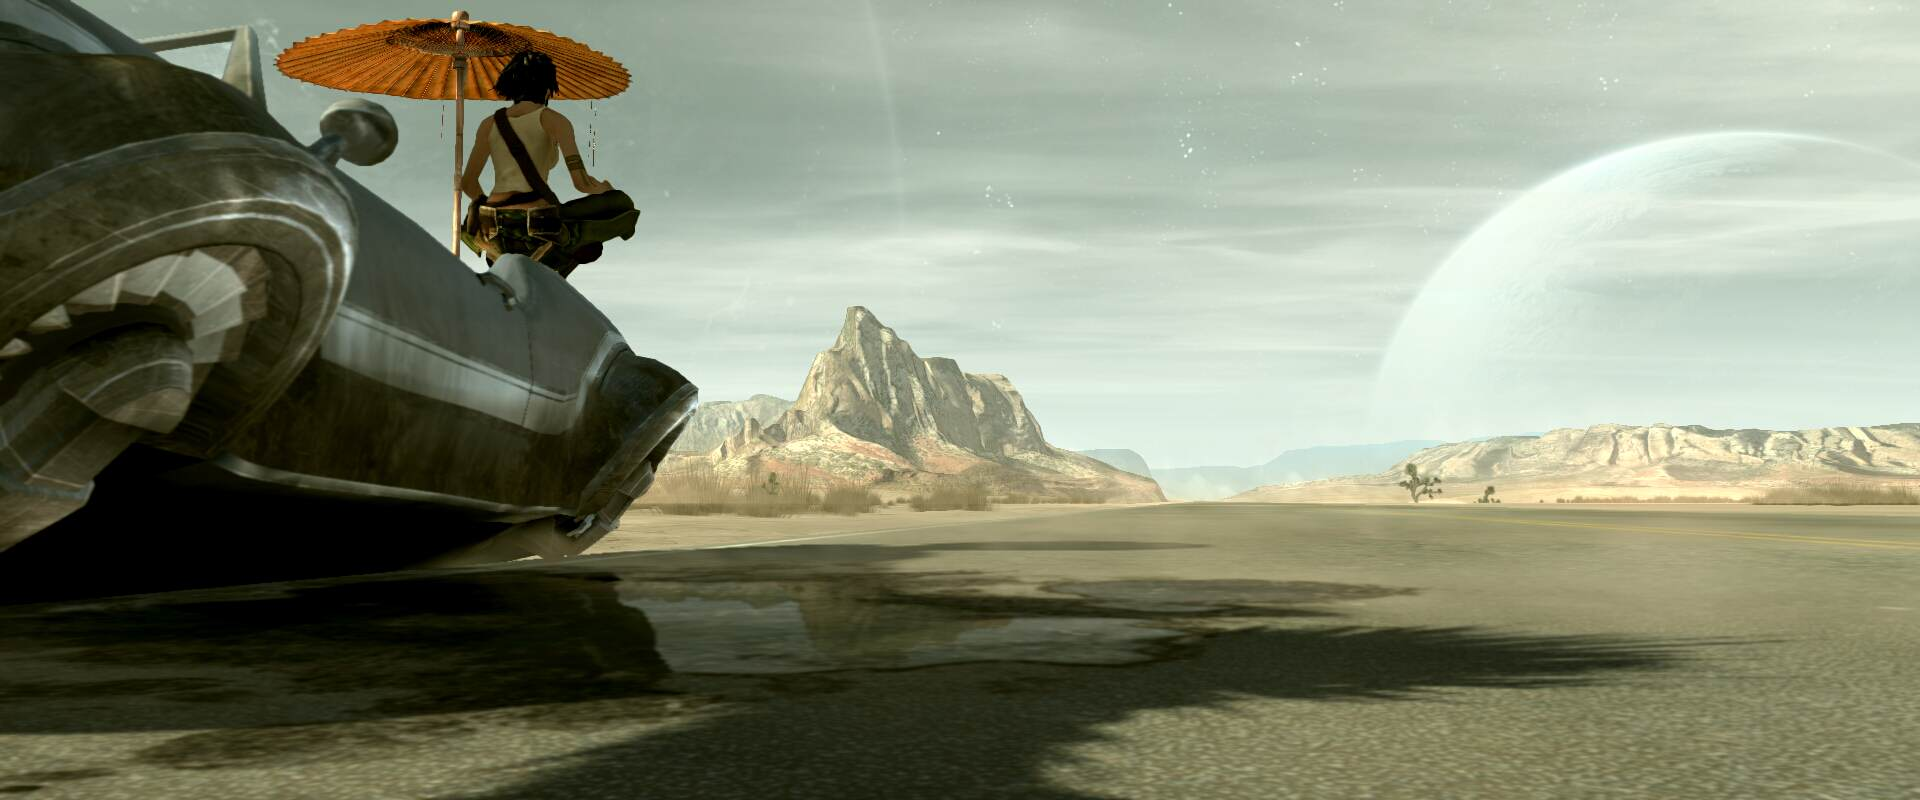 More Evidence That Beyond Good & Evil 2 Is Coming 9961 483daacb01937